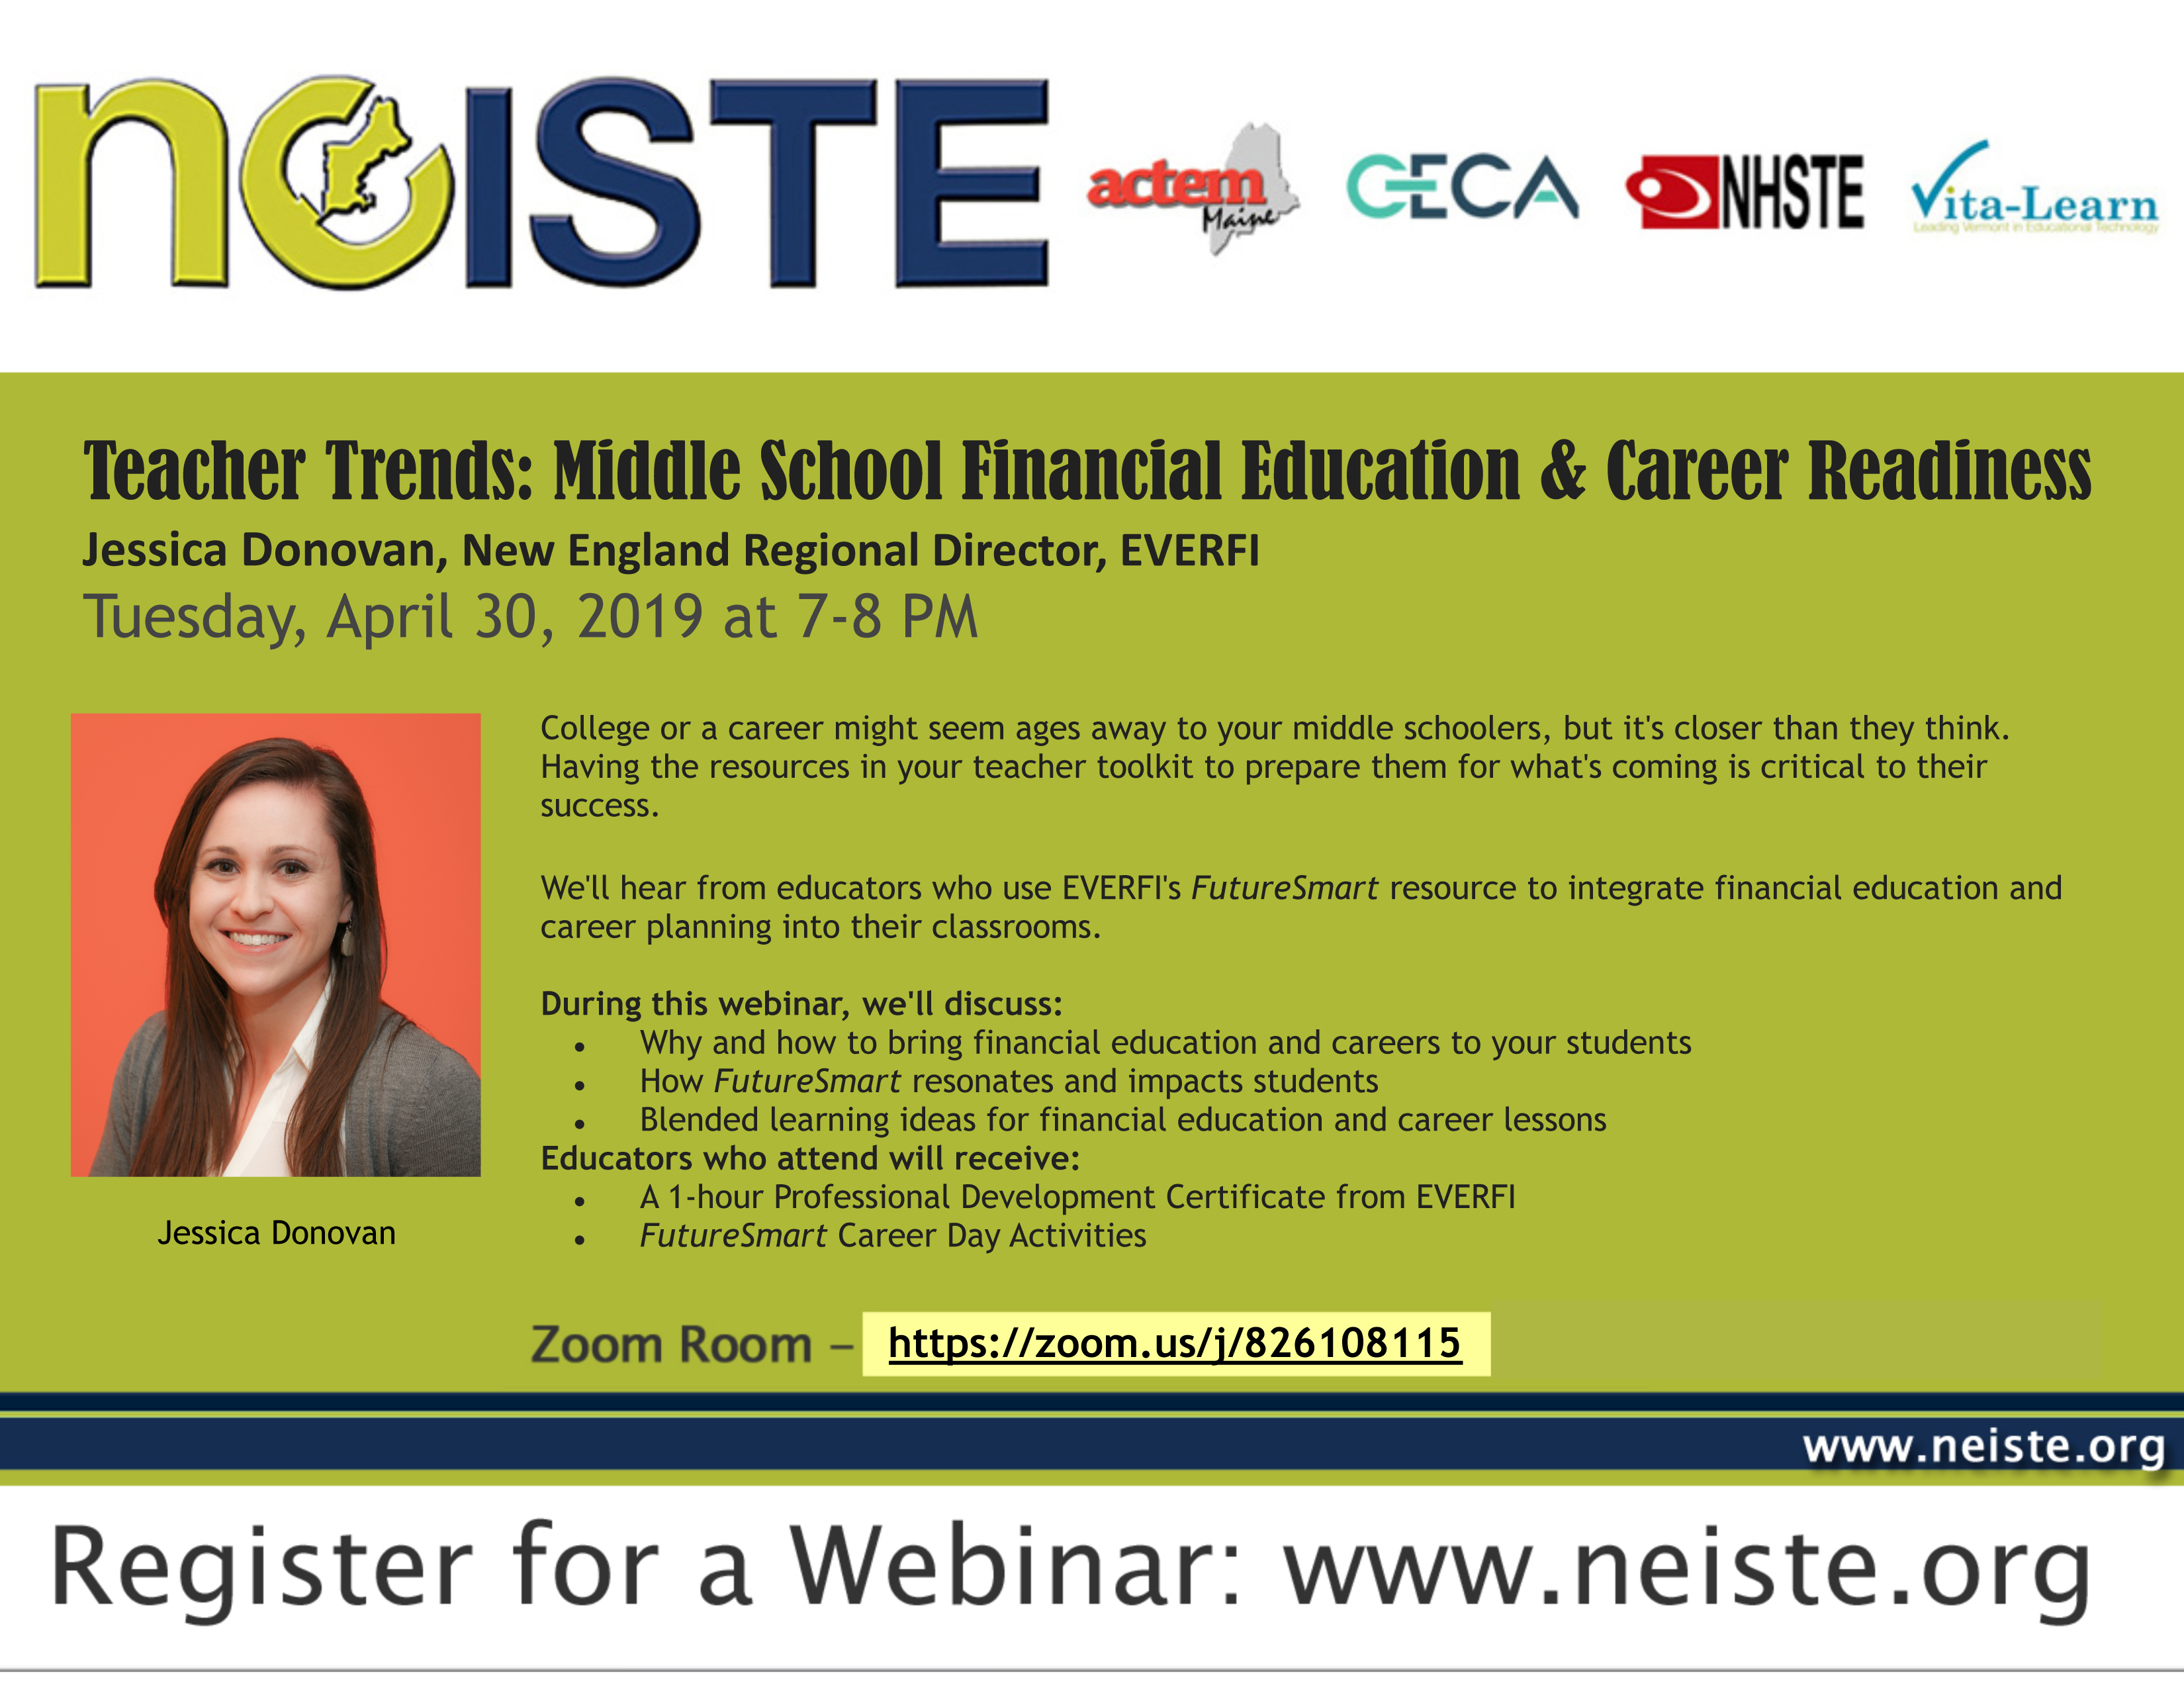 Teacher Trends: Middle School Financial Education & Career Readiness